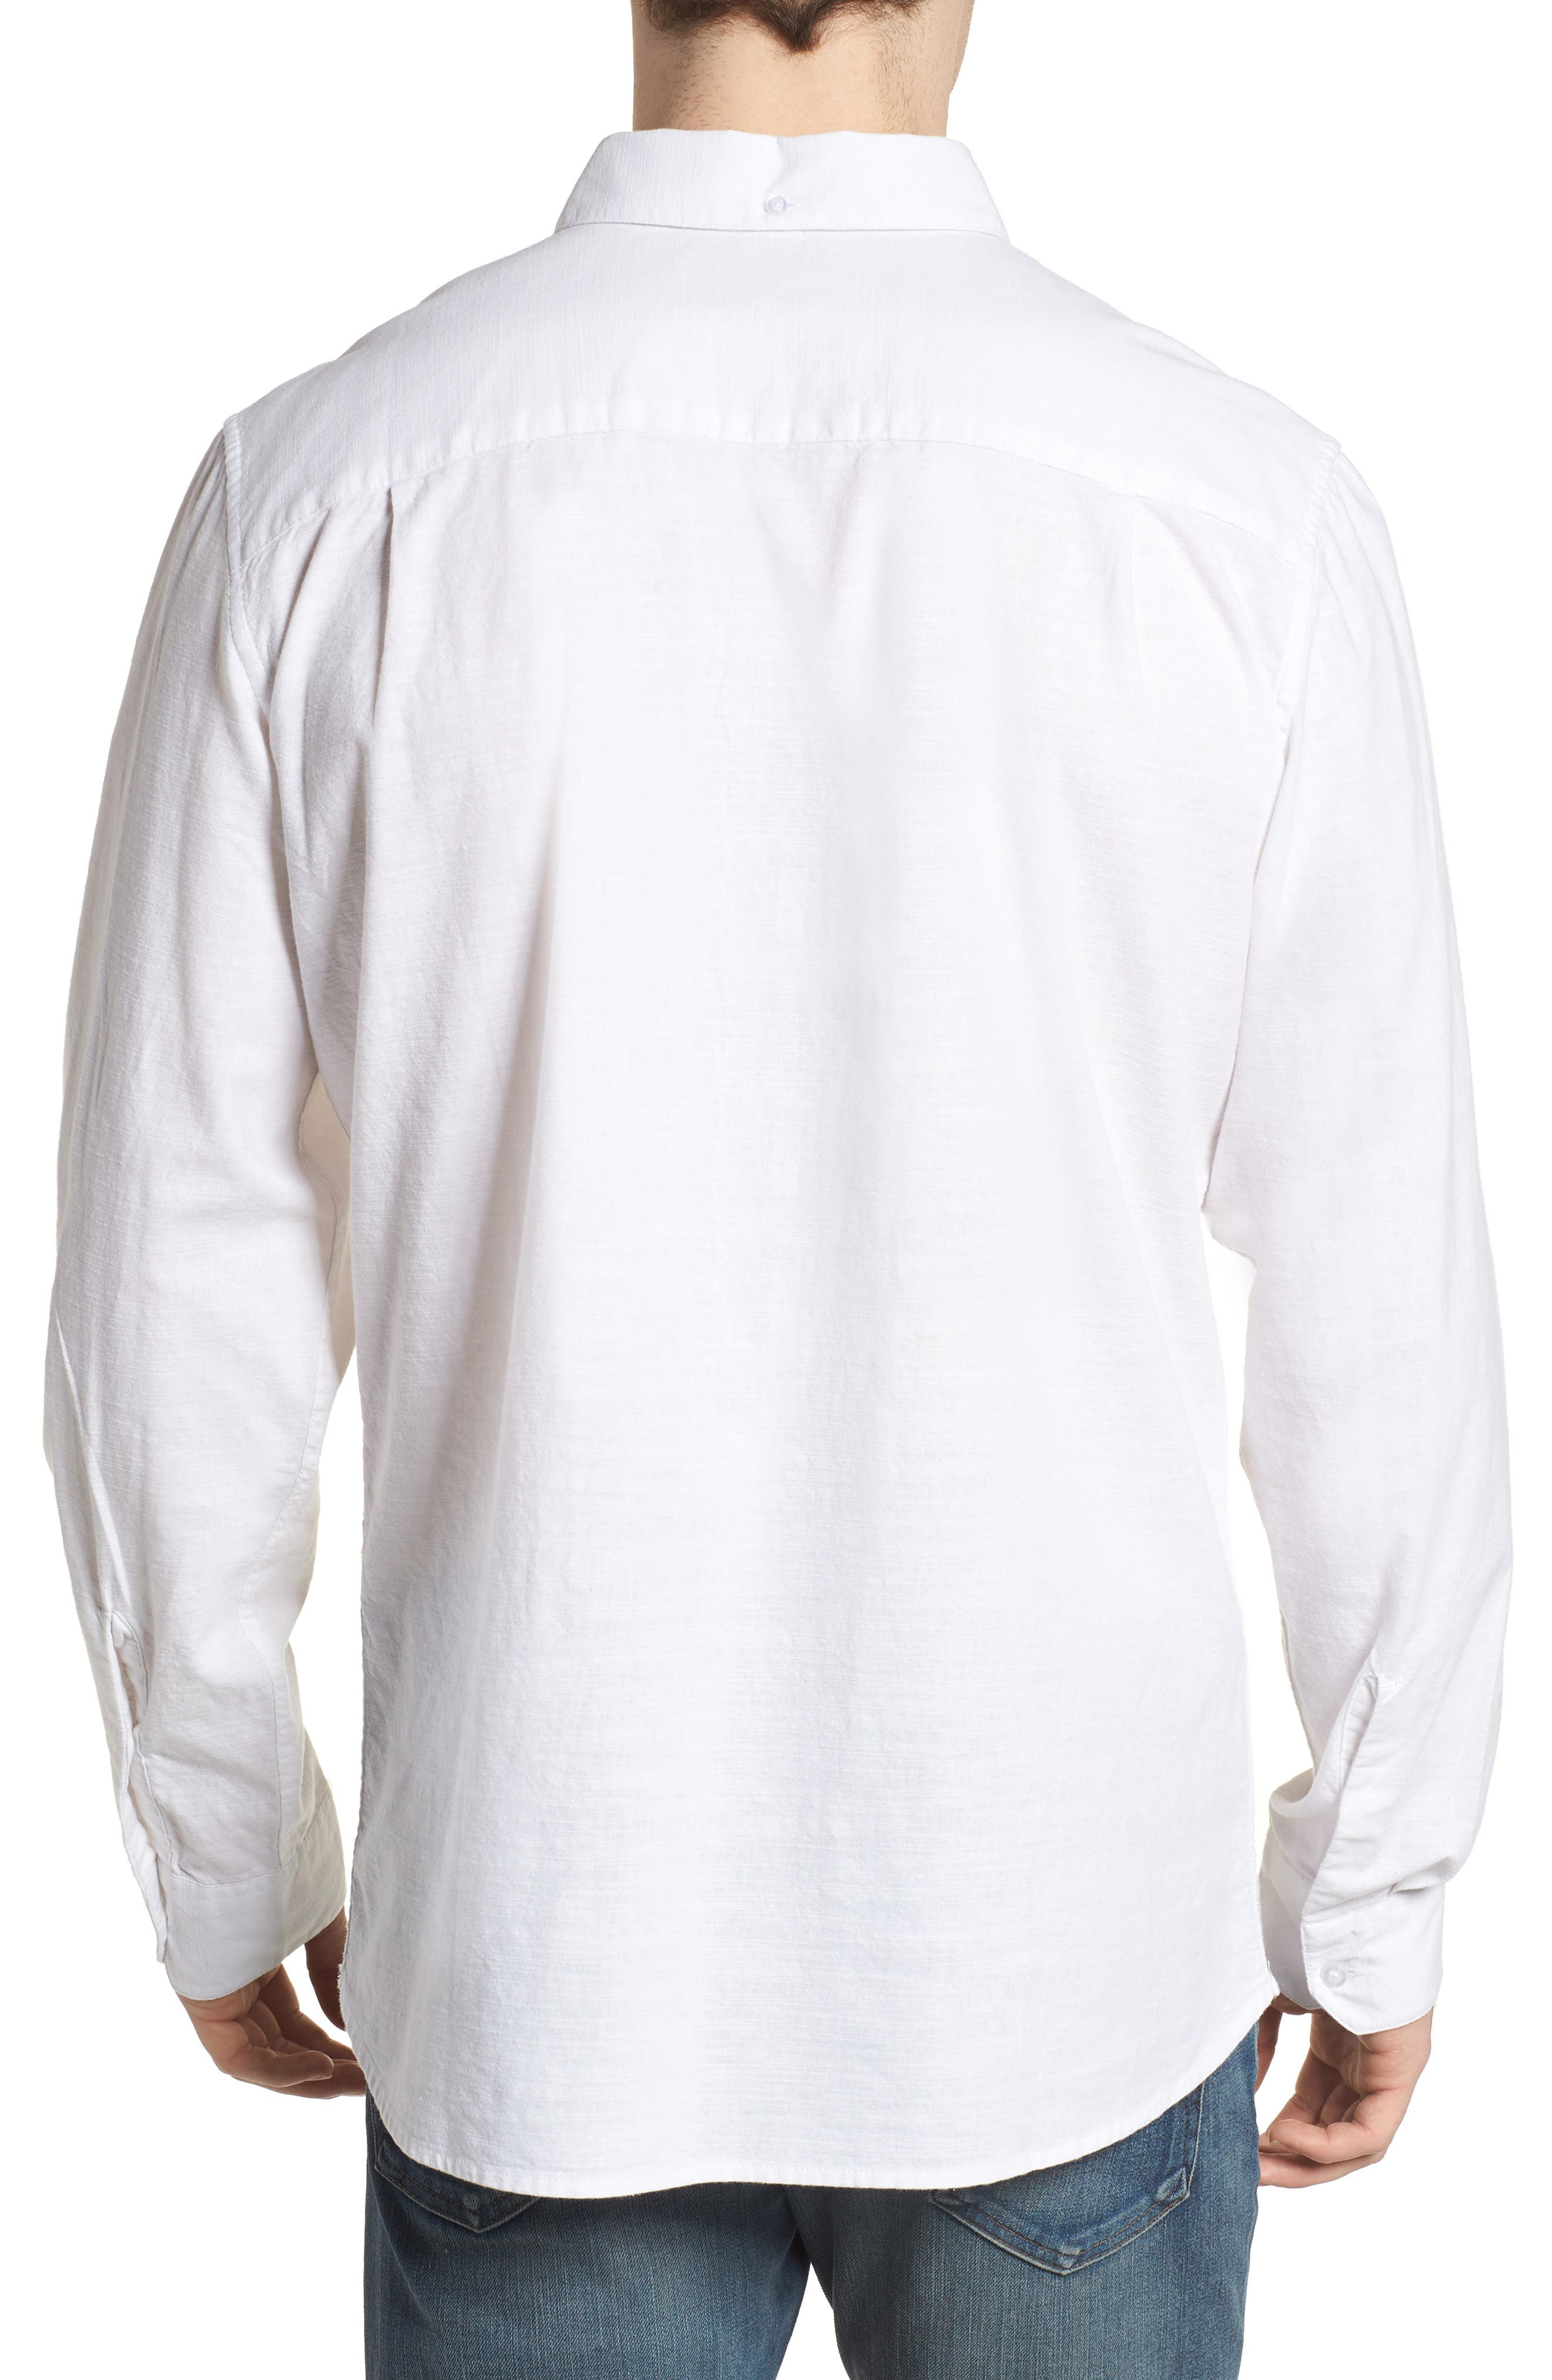 Alternate Image 3  - Hurley One & Only 2.0 Woven Shirt